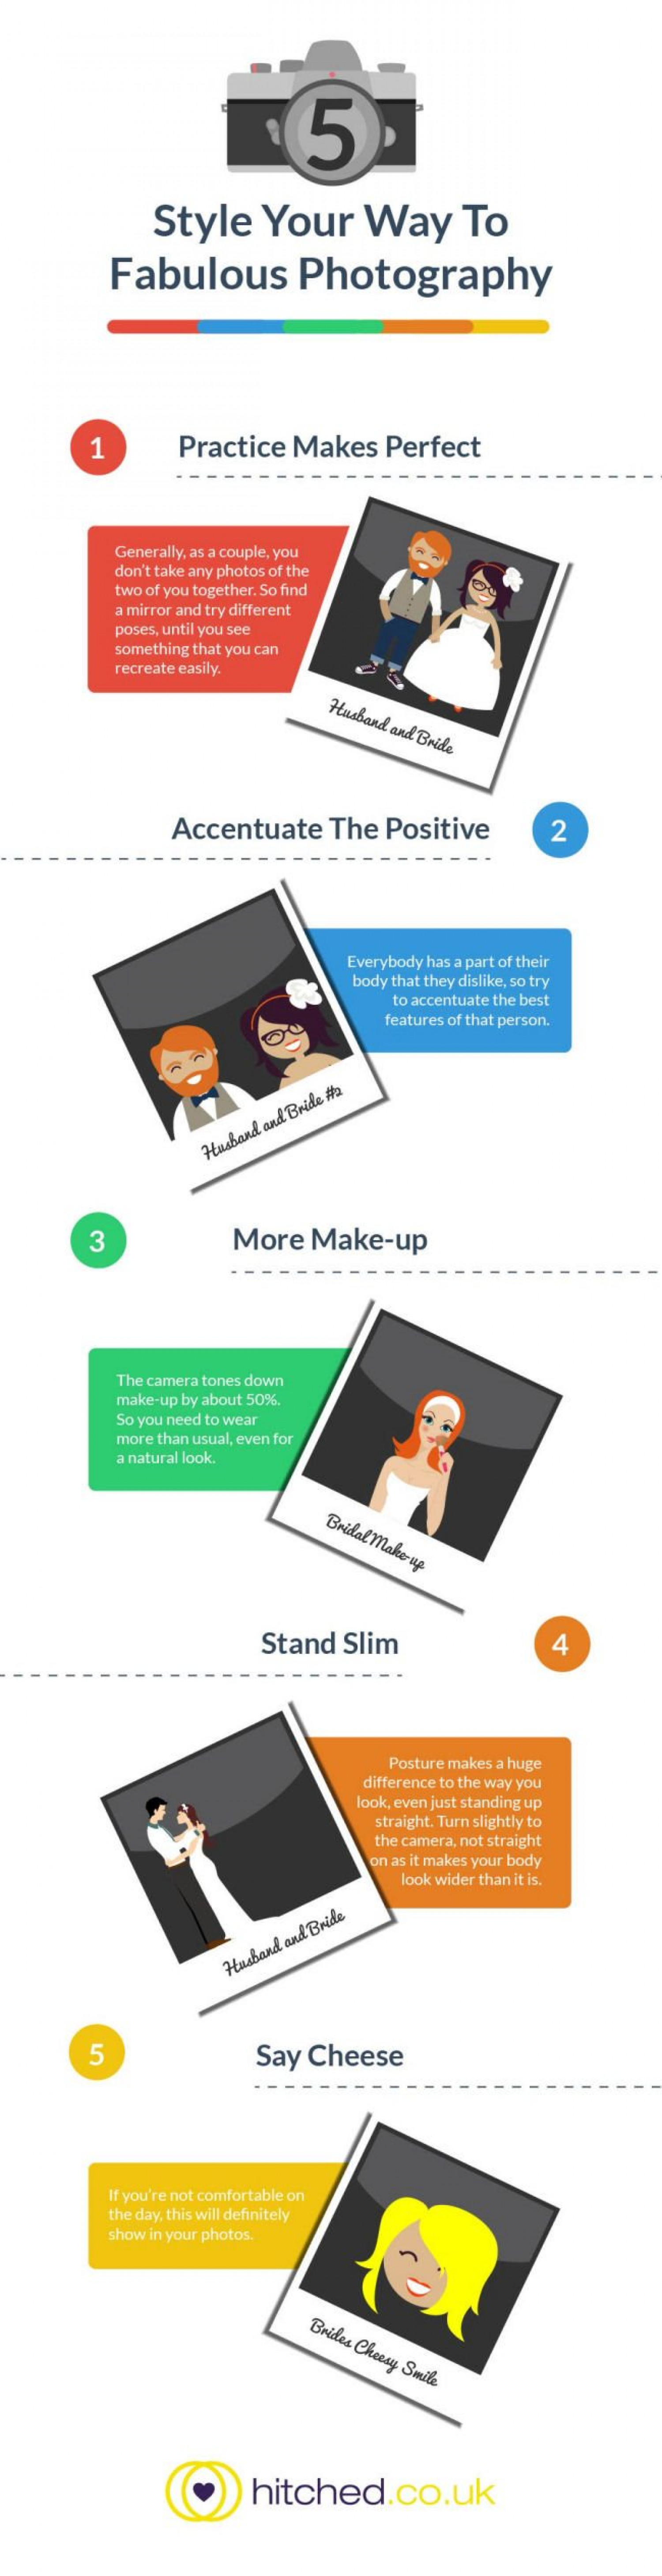 Style Your Way To Fabulous Photography Infographic